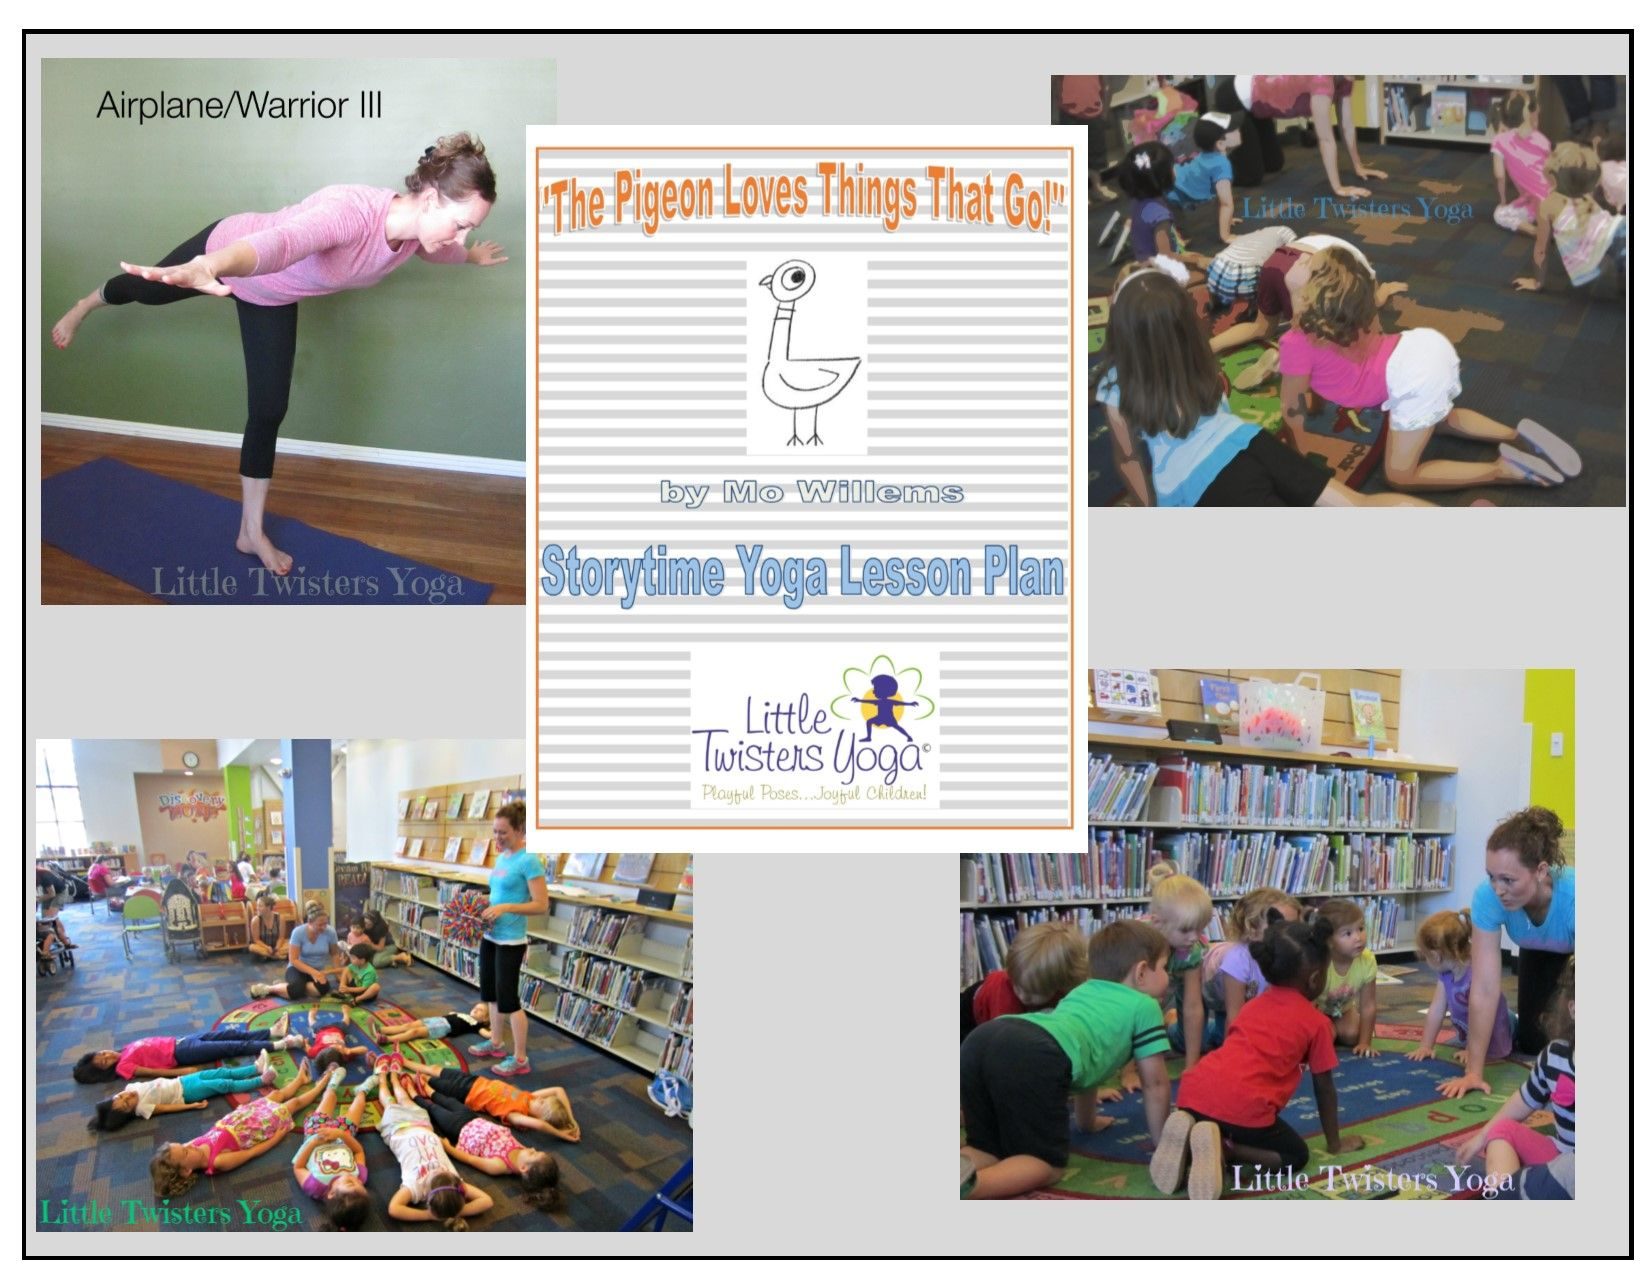 Free Download This Children S Storytime Yoga Lesson Plan